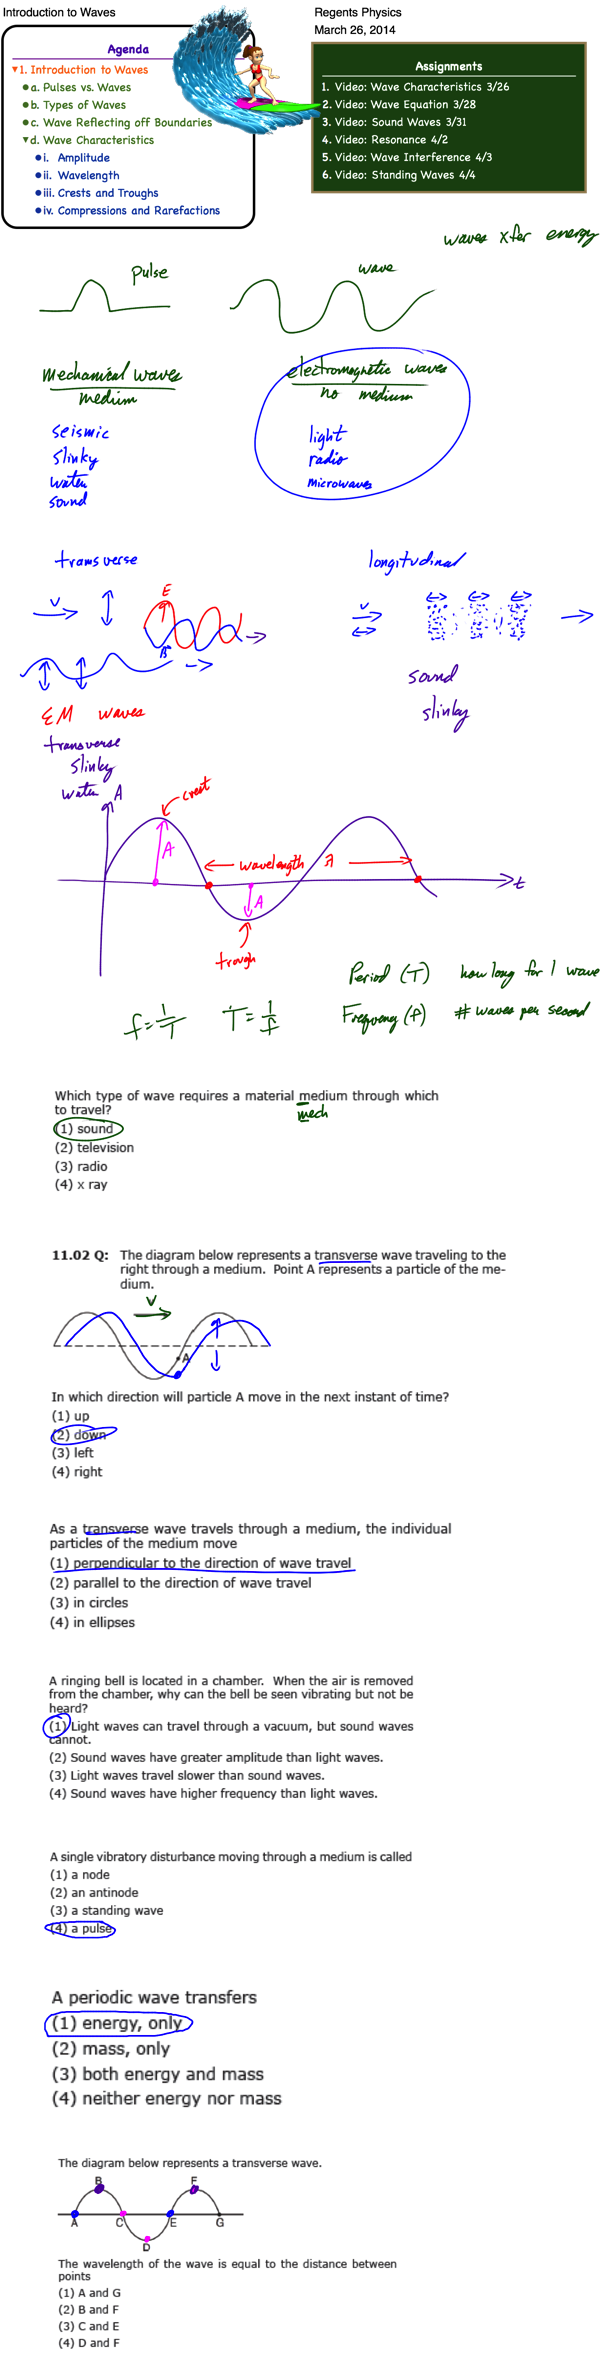 Amplitude archives regents posted. Clipart waves wave physics